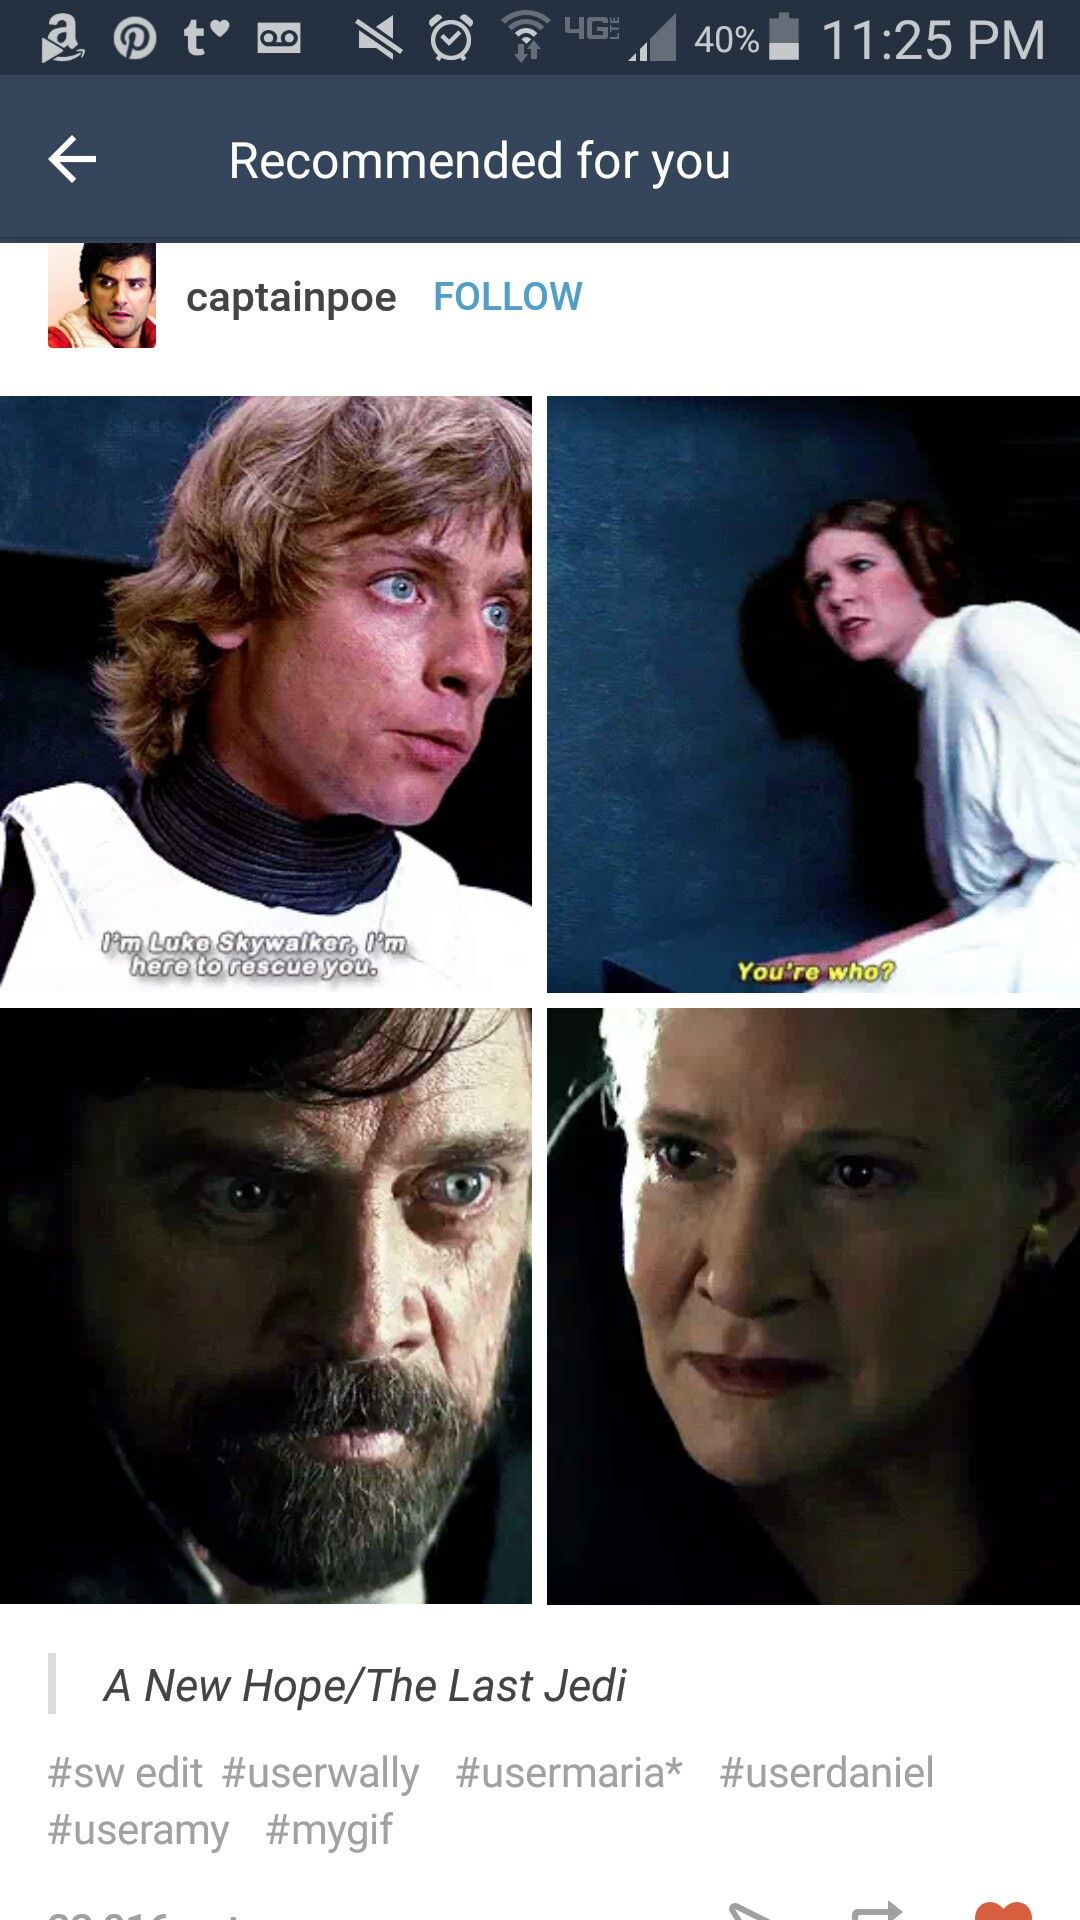 Star Wars A New Hope The Last Jedi Luke And Leia Leia Star Wars Star Wars Humor Star Wars Memes